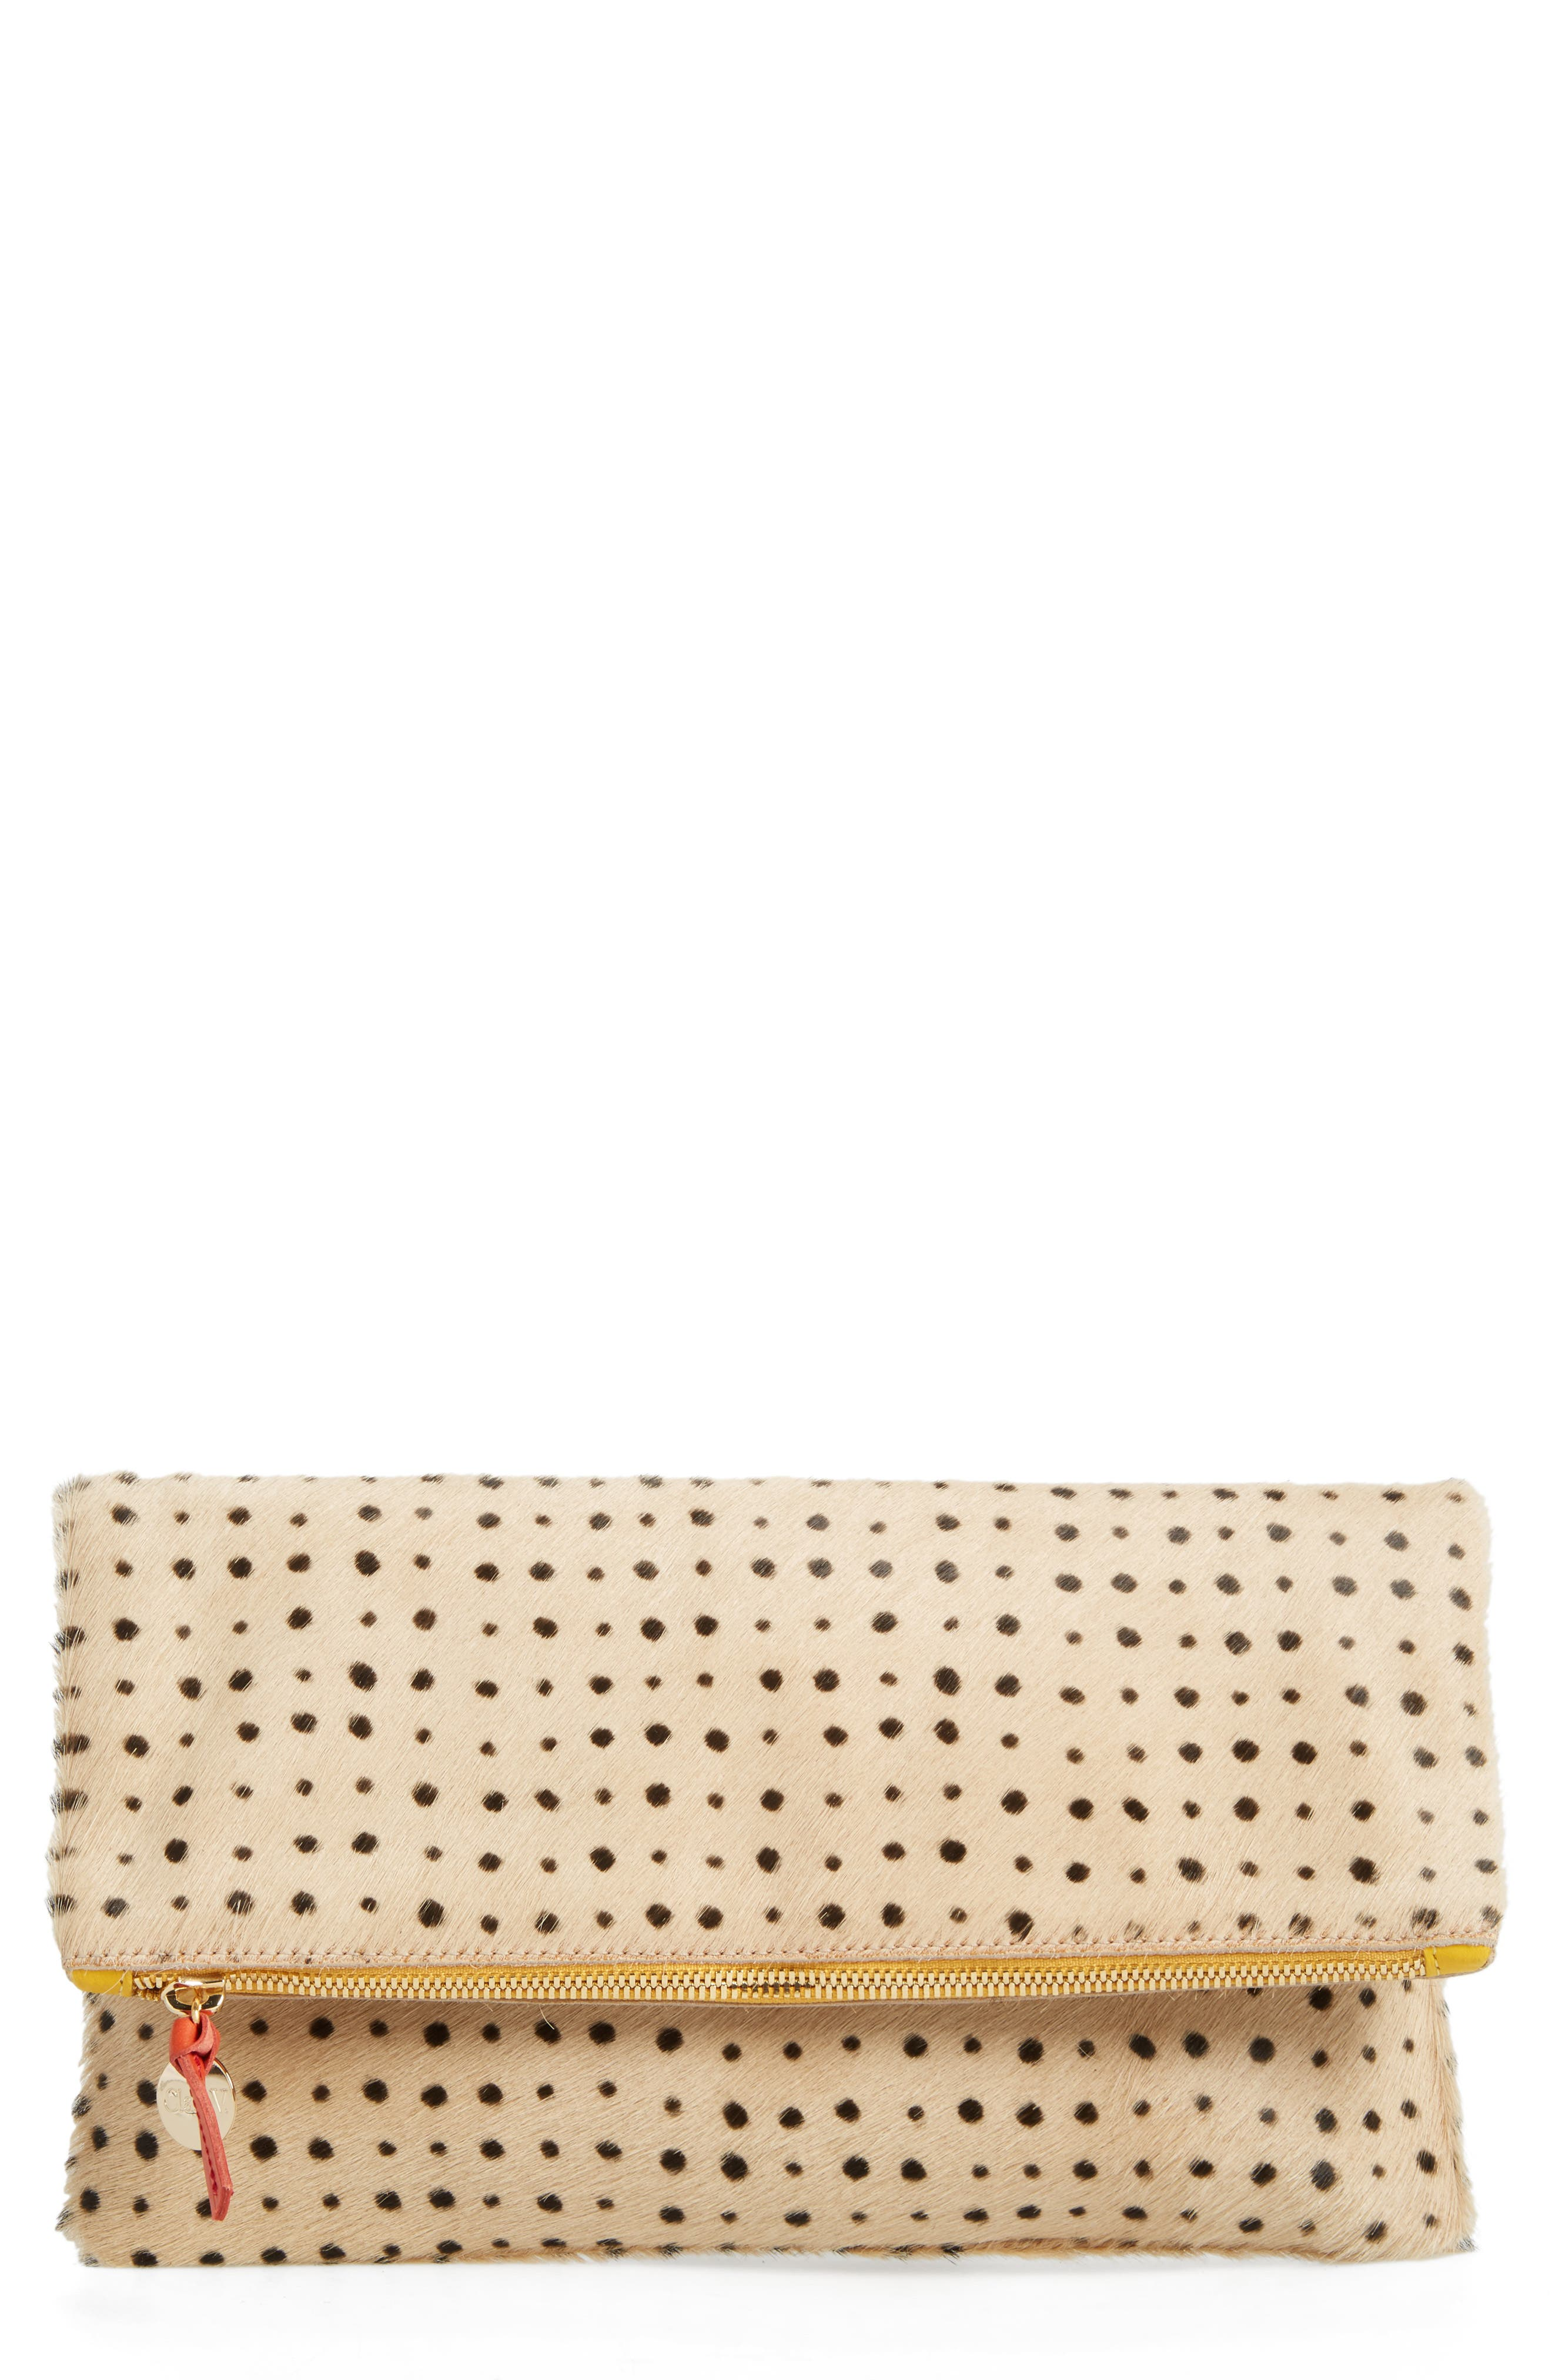 Genuine Calf Hair Foldover Clutch,                             Main thumbnail 1, color,                             TAN SPOTTED HAIR ON